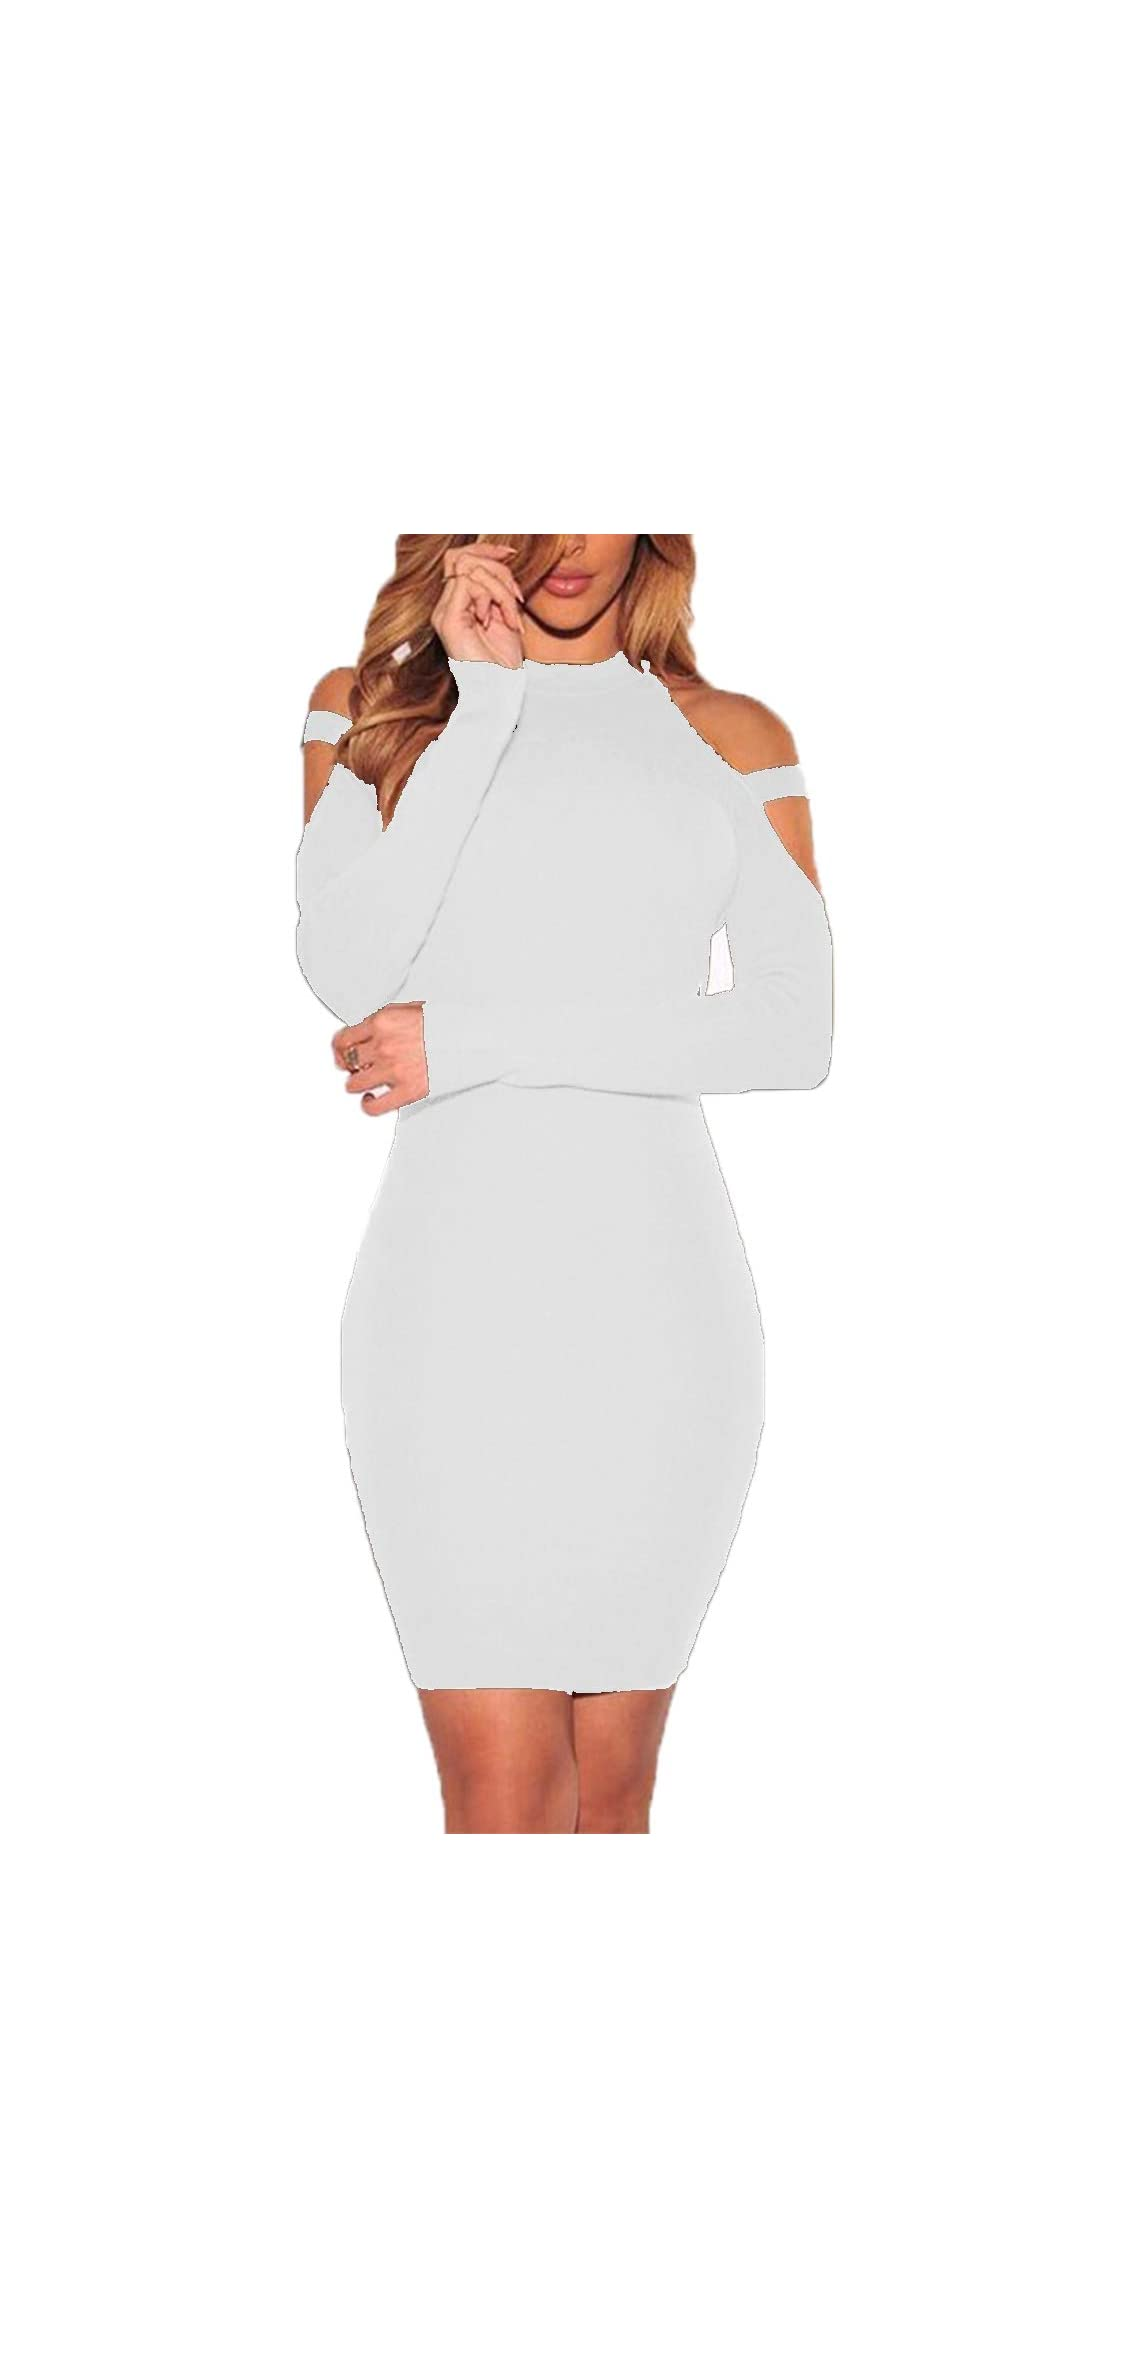 Women's Sexy Cold Shoulder Long Sleeve Dress Bandage Party